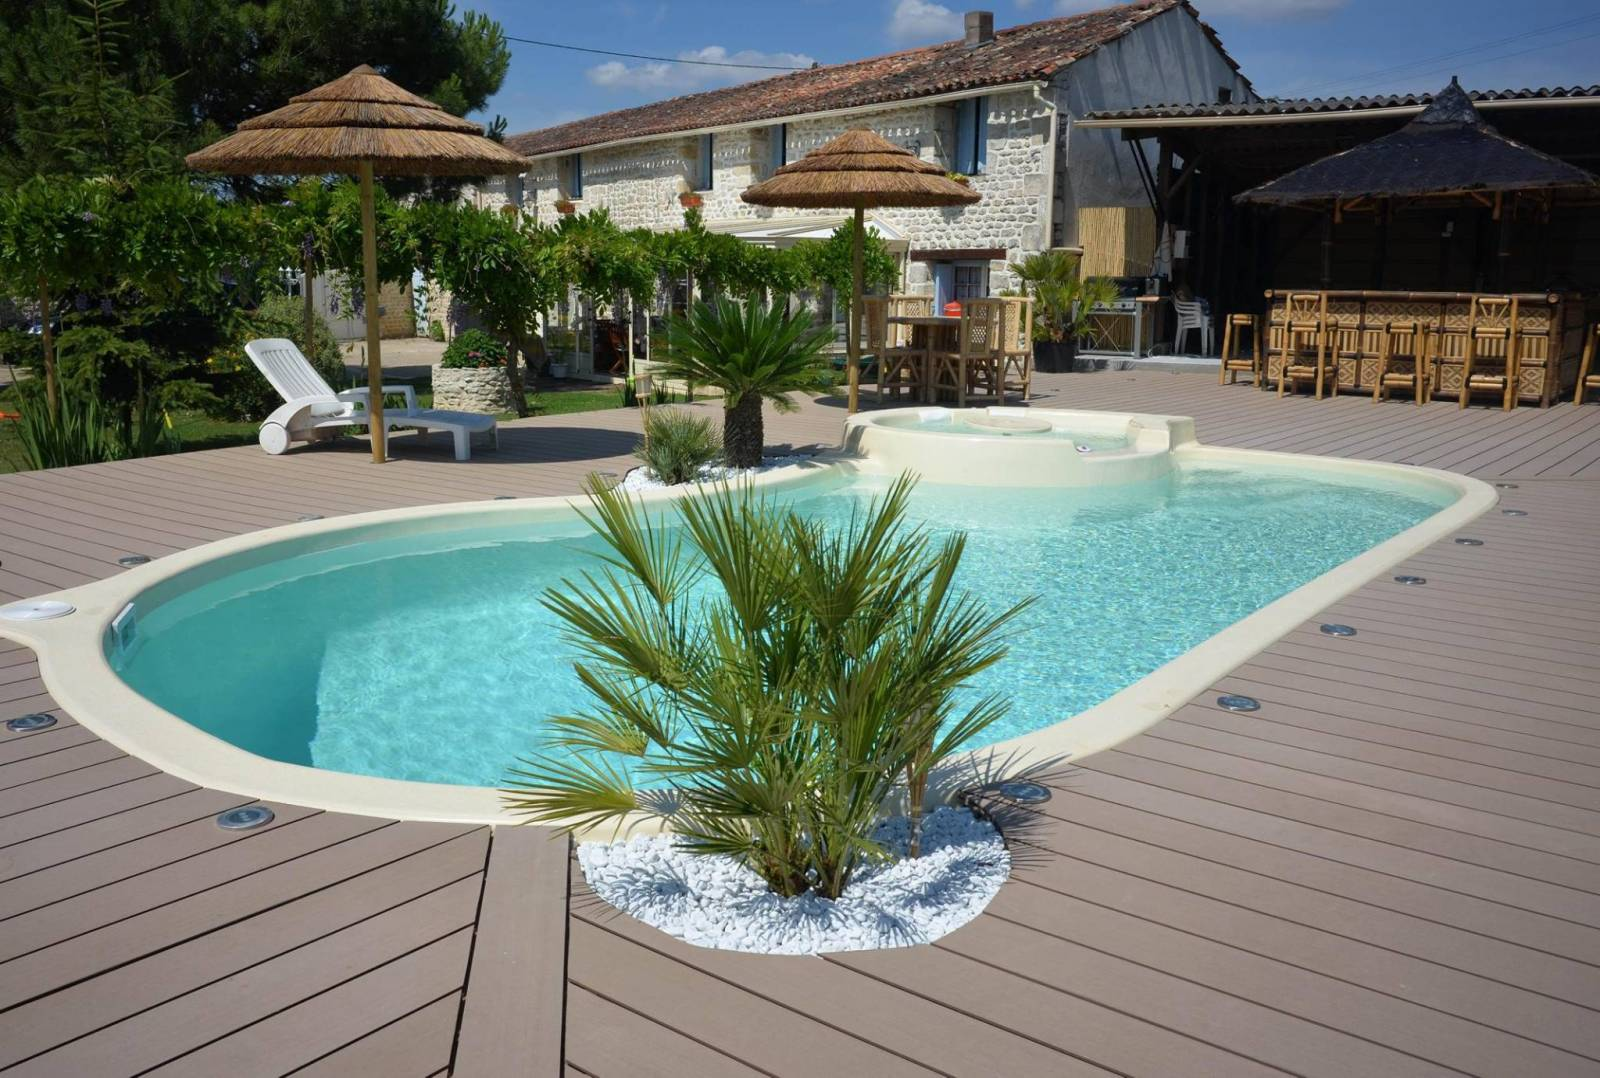 Fabricant de piscines coque montpellier freedom piscines for Piscine resine coque